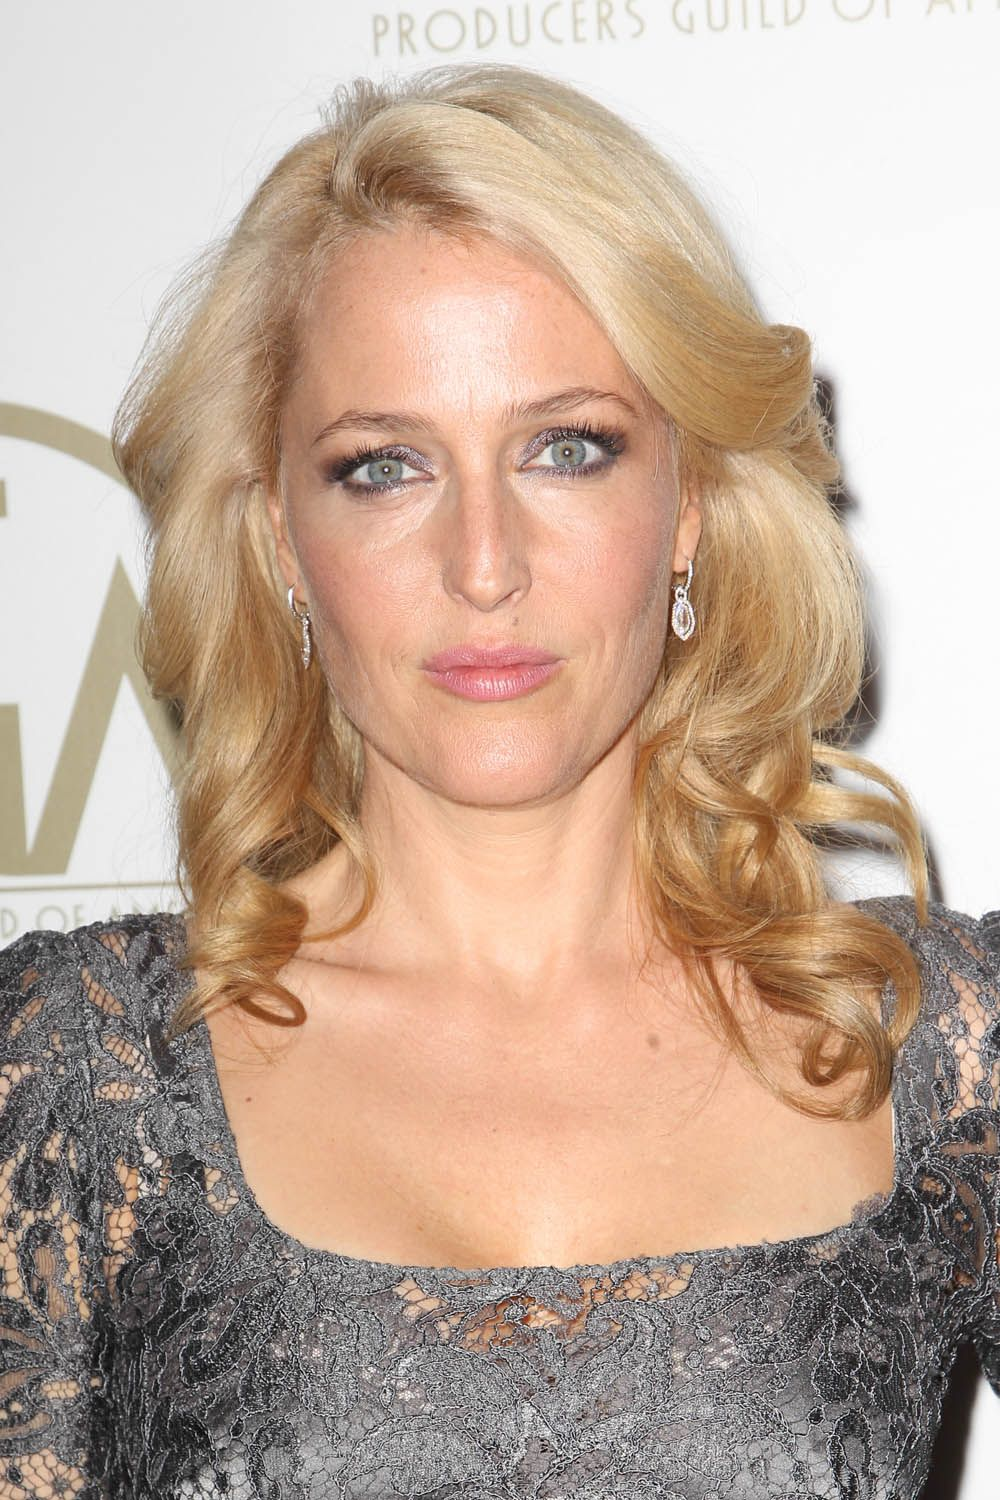 Gillian anderson hairstyles hair color pictures are also available